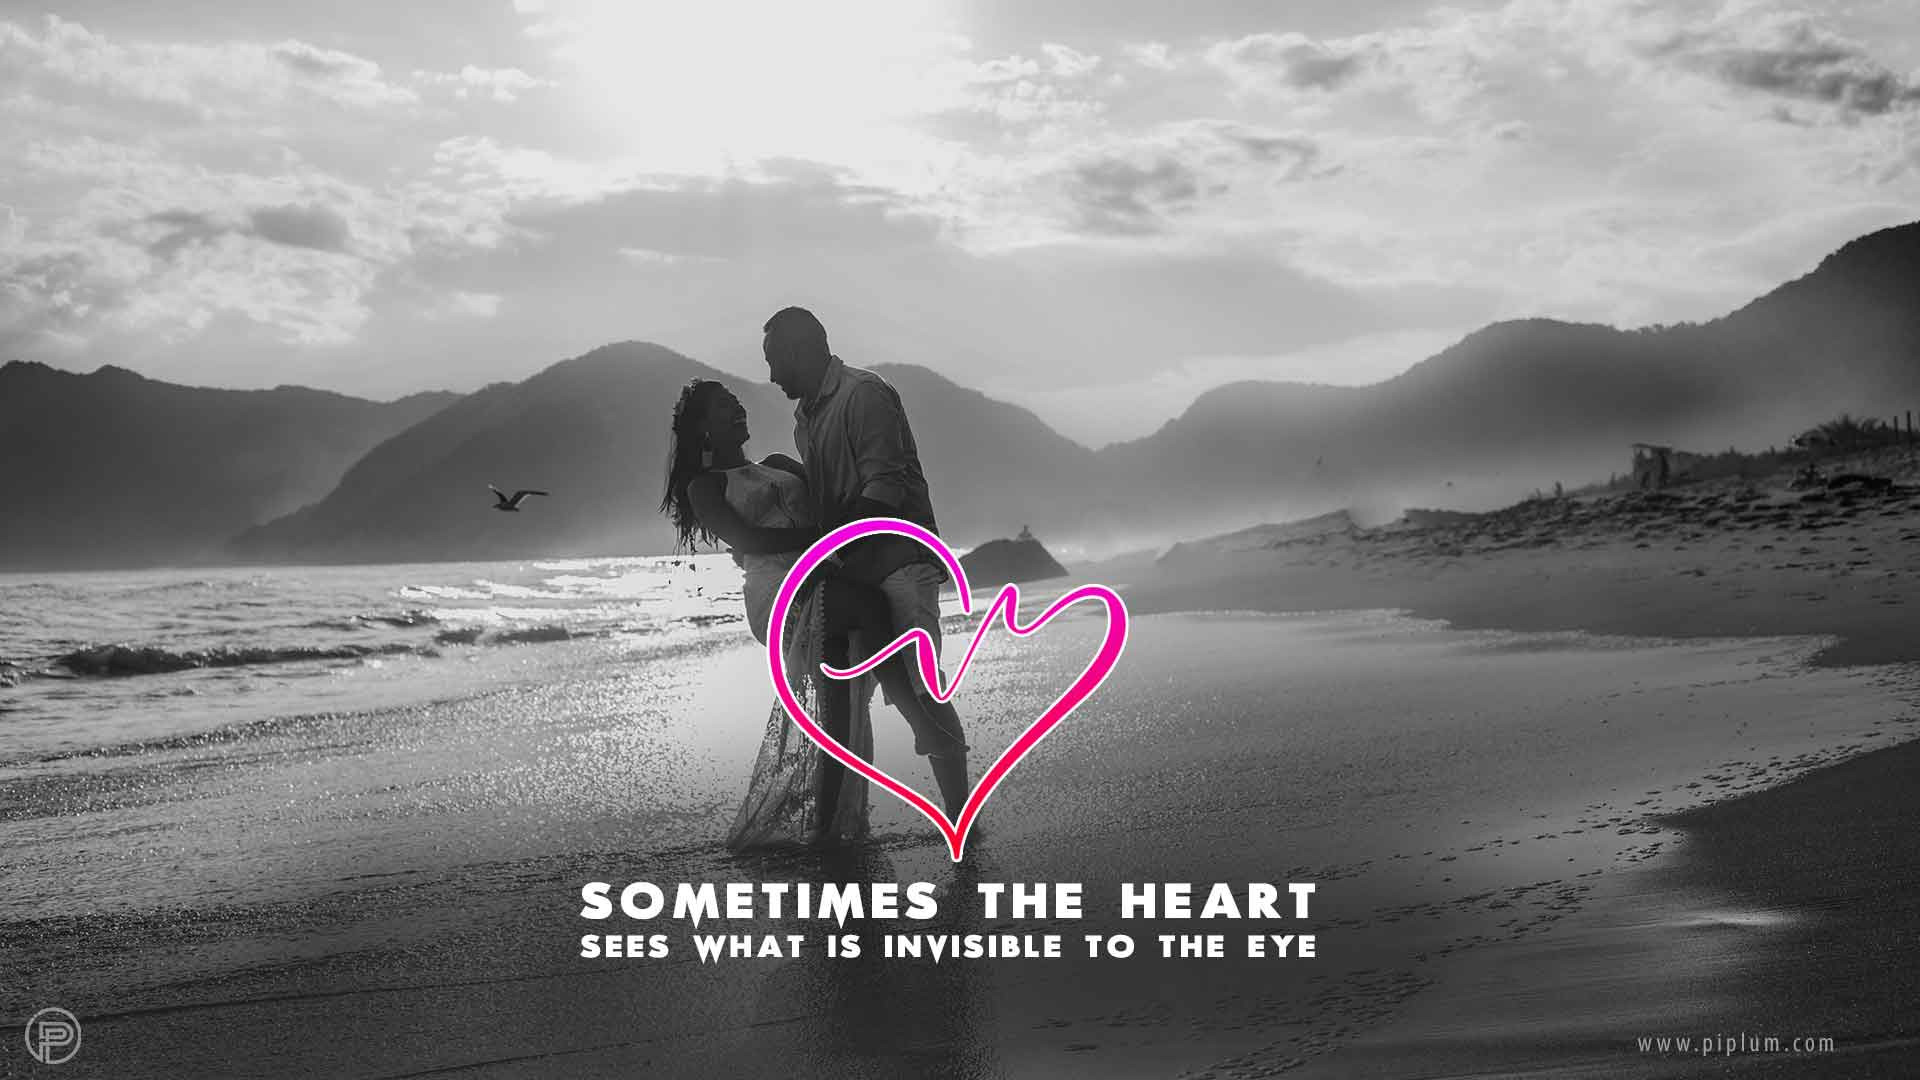 Heart-Sees-What-Is-Invisible-To-The-Eye-lovers-beach